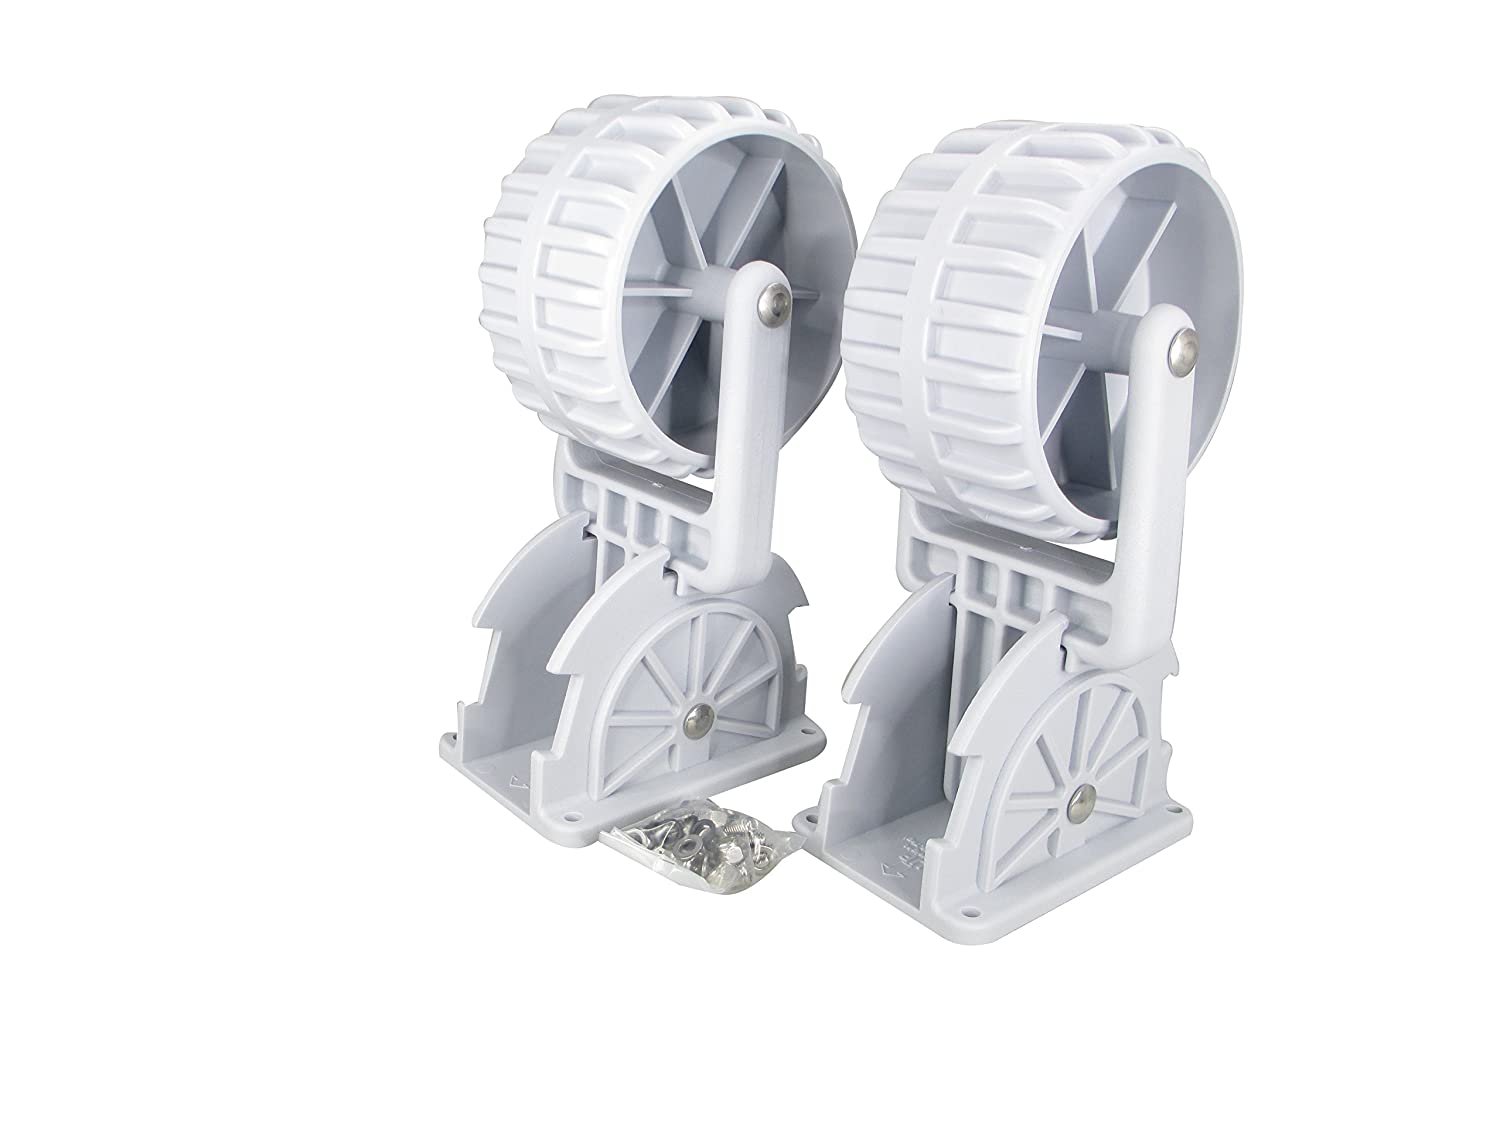 Pactrade Marine Flip-up Retrackable Dinghy wheels Pair Nylon Inflatable Boat Launching wheels/Boat Dolly